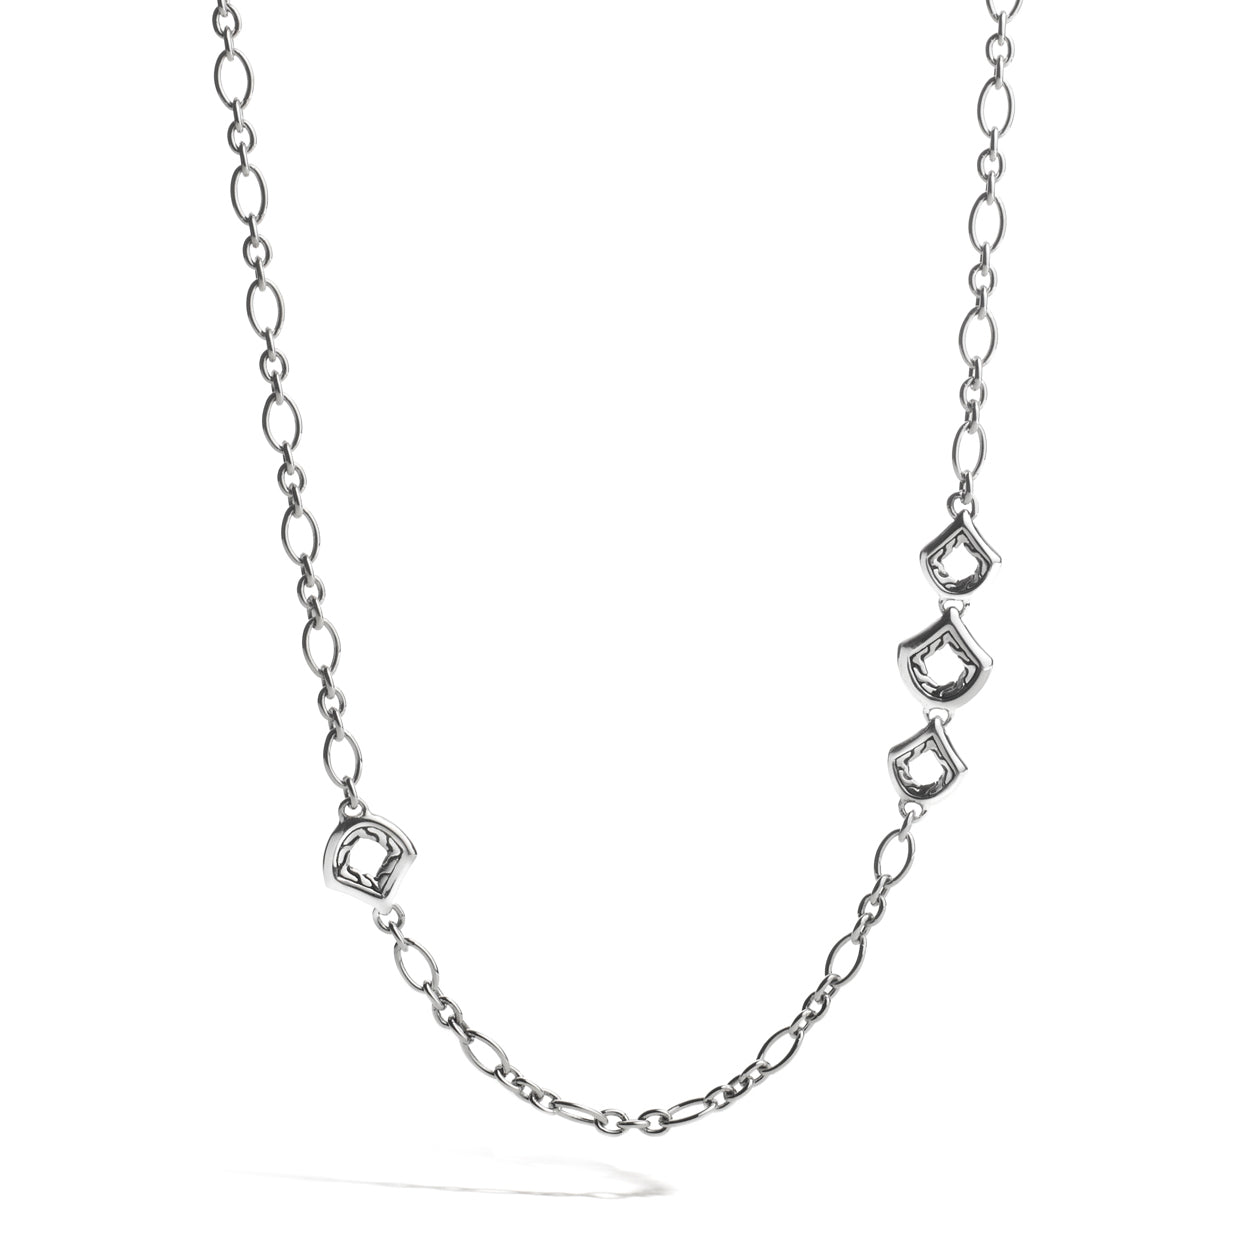 John Hardy Naga 4mm Figaro Chain with Figurative Naga Clasp